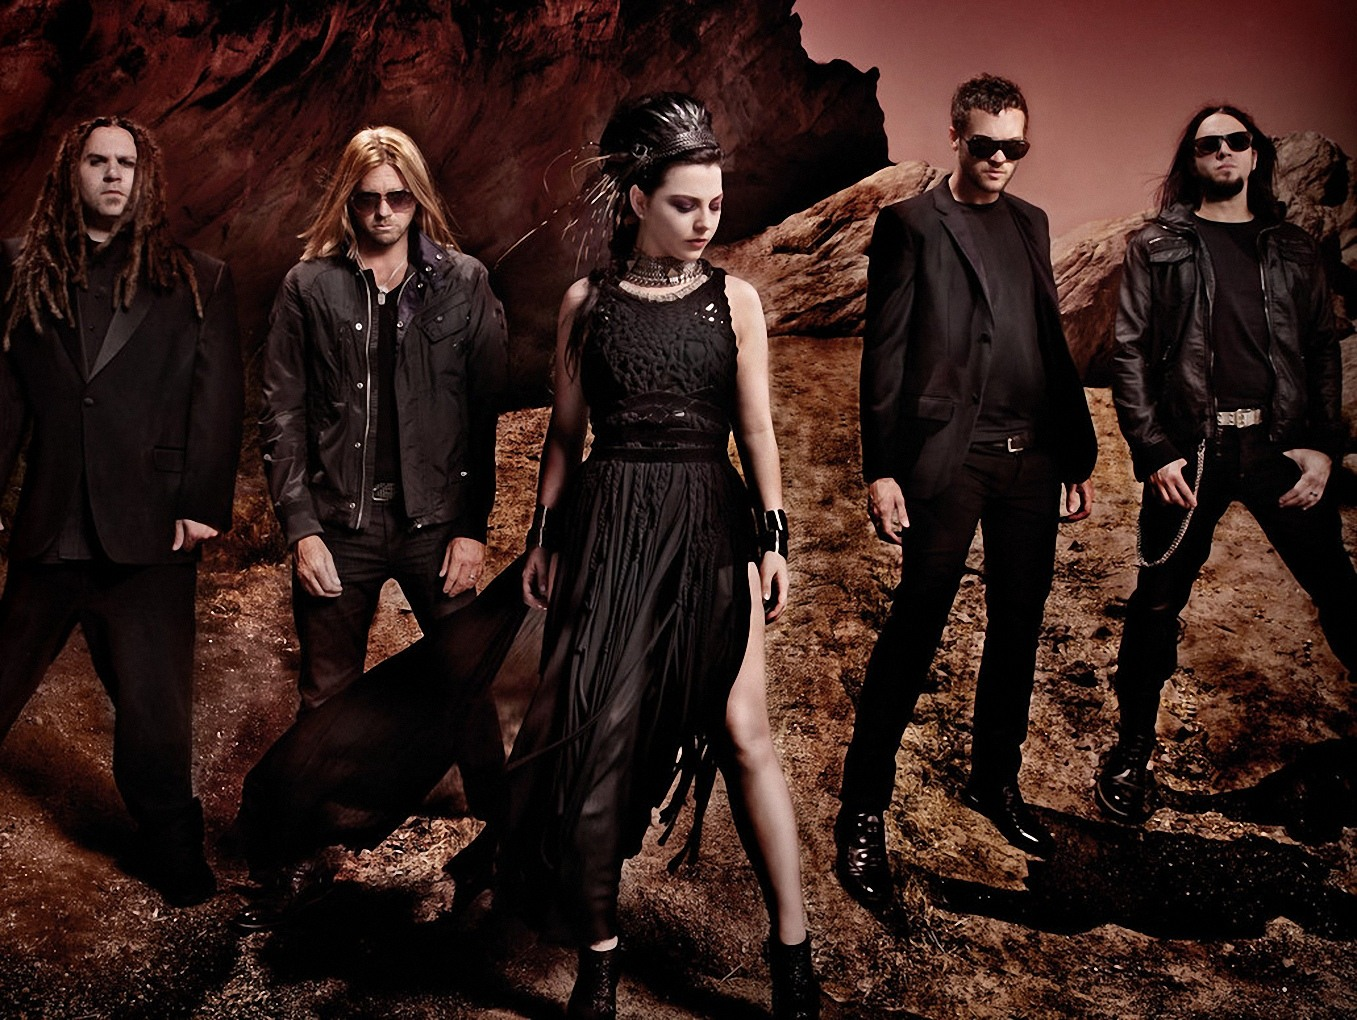 Wallpapers 8 Evanescence Biography Rock 1357x1020